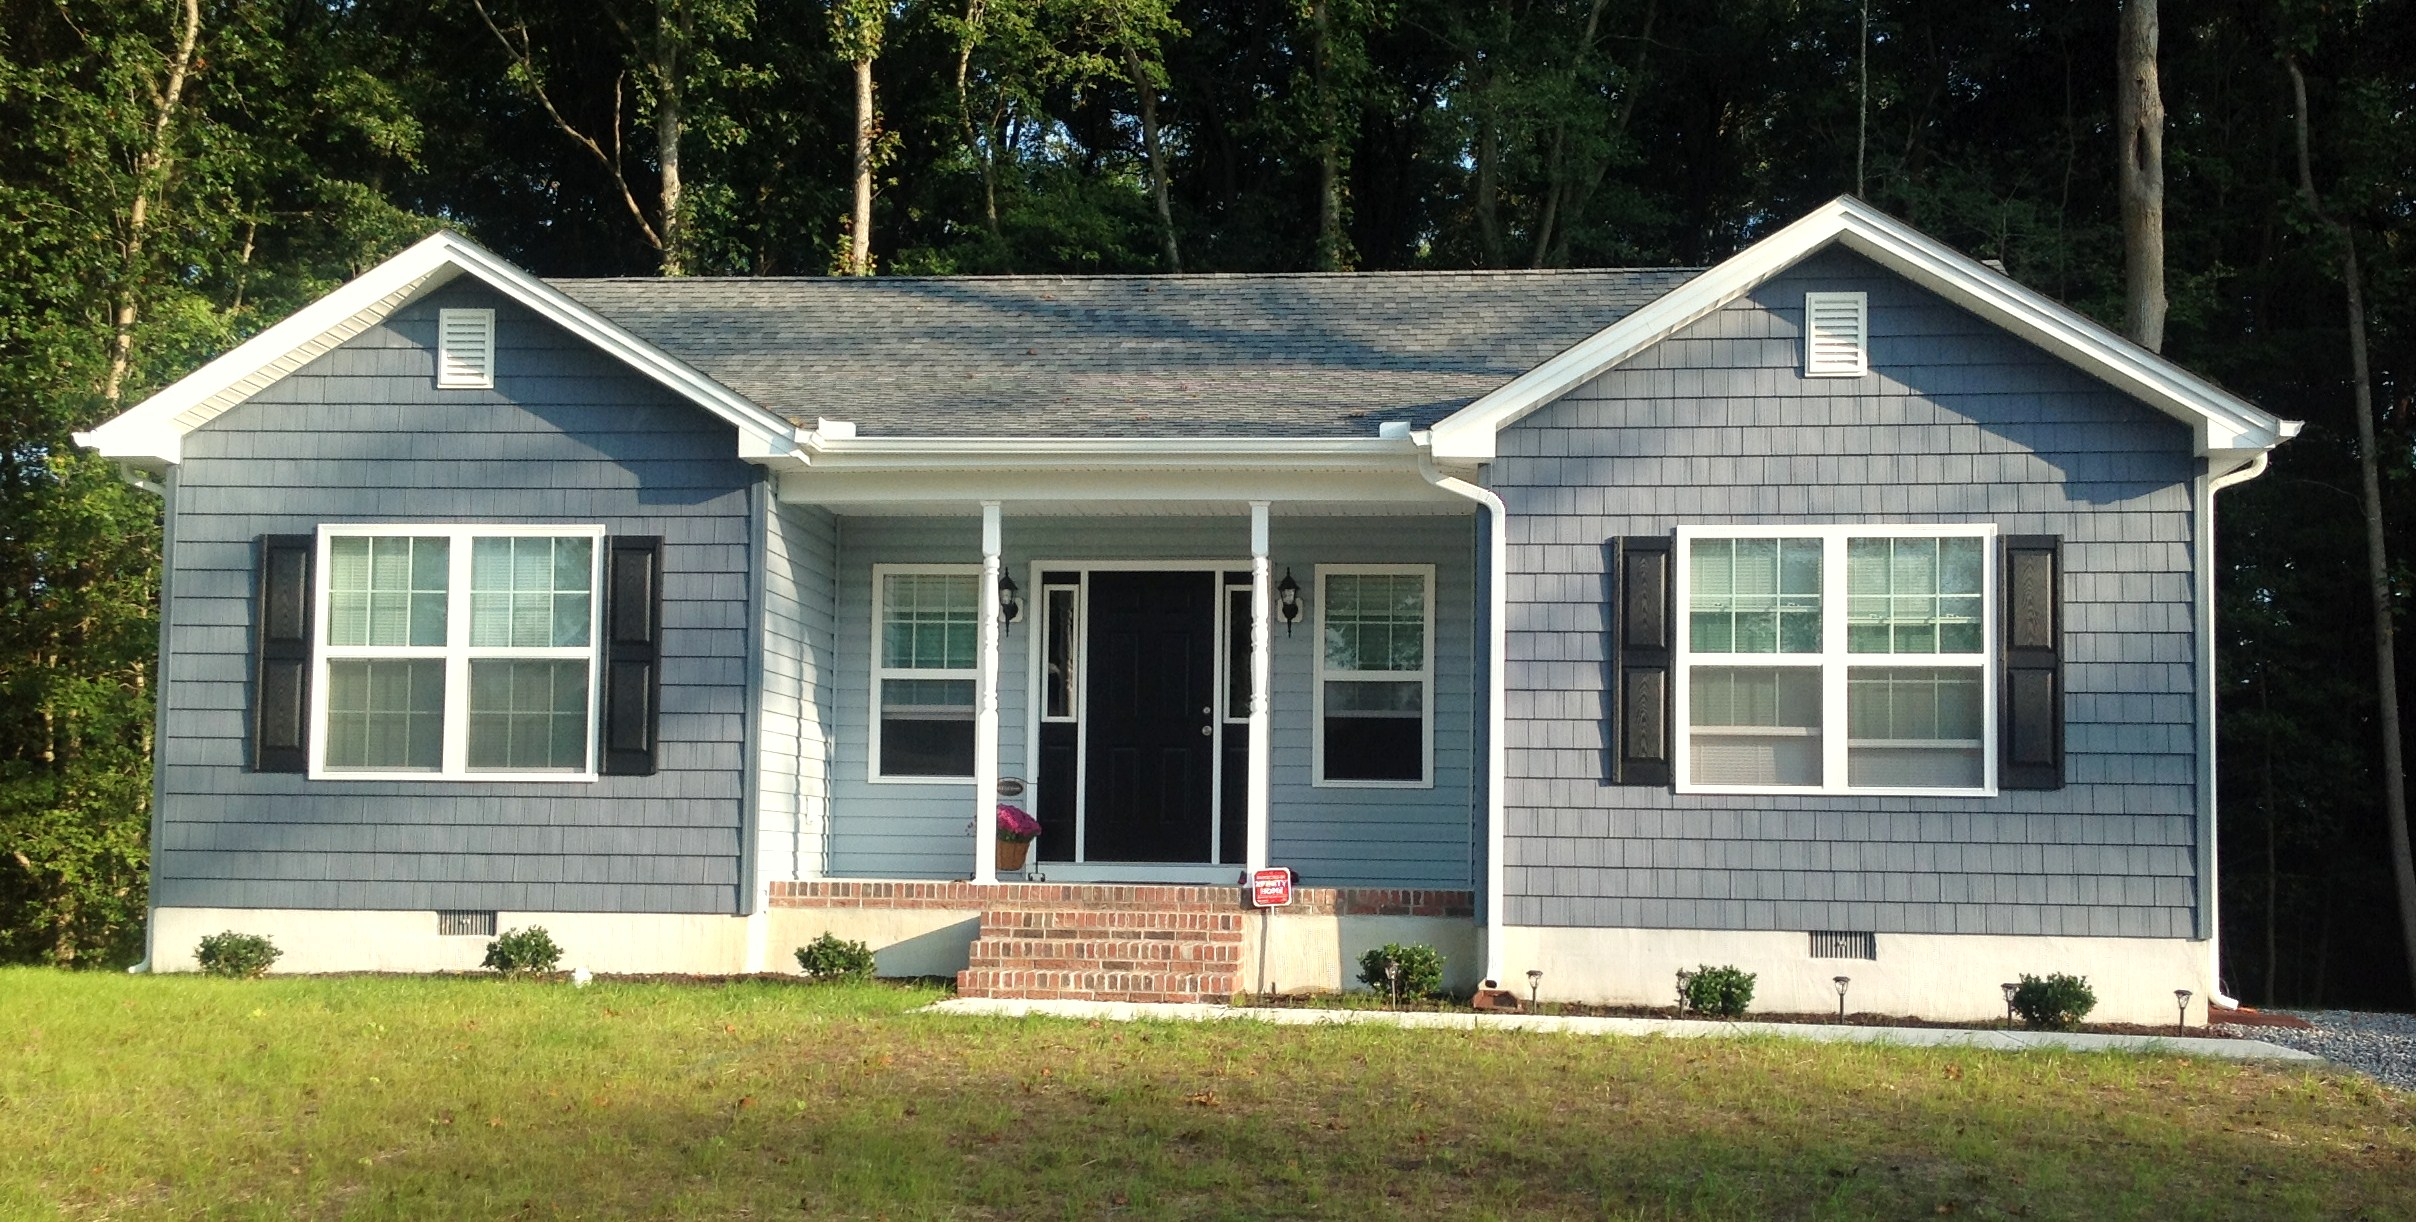 Delmar MD real estate and homes for sale